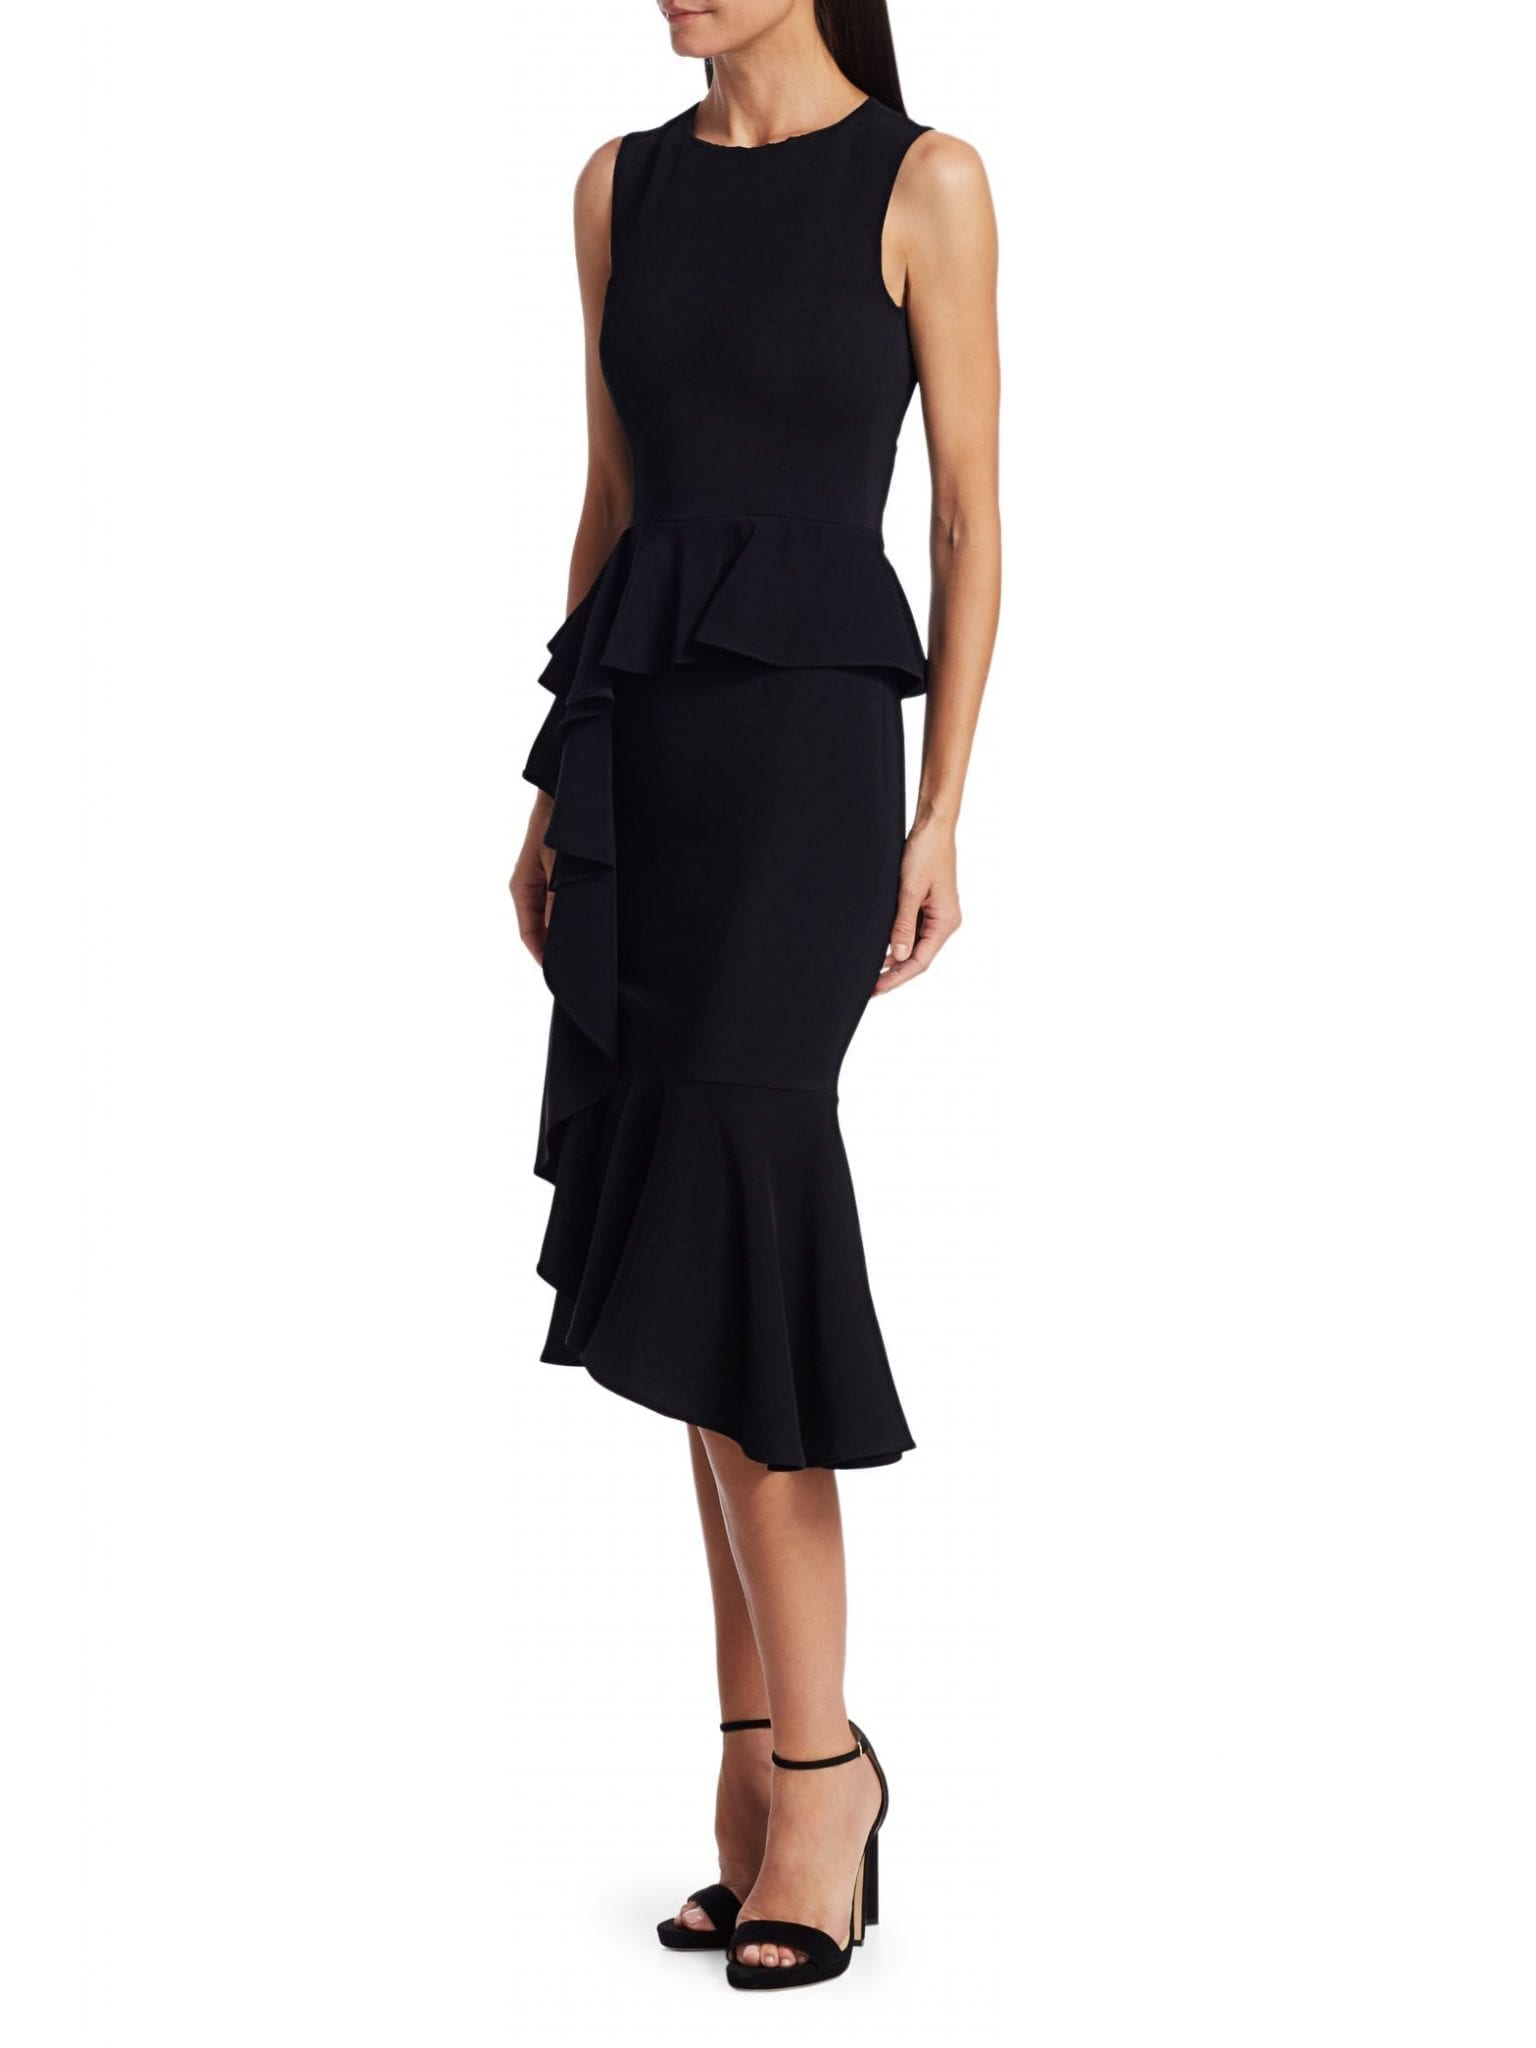 MICHAEL KORS COLLECTION Asymmetric Cascade Ruffle Sheath Dress